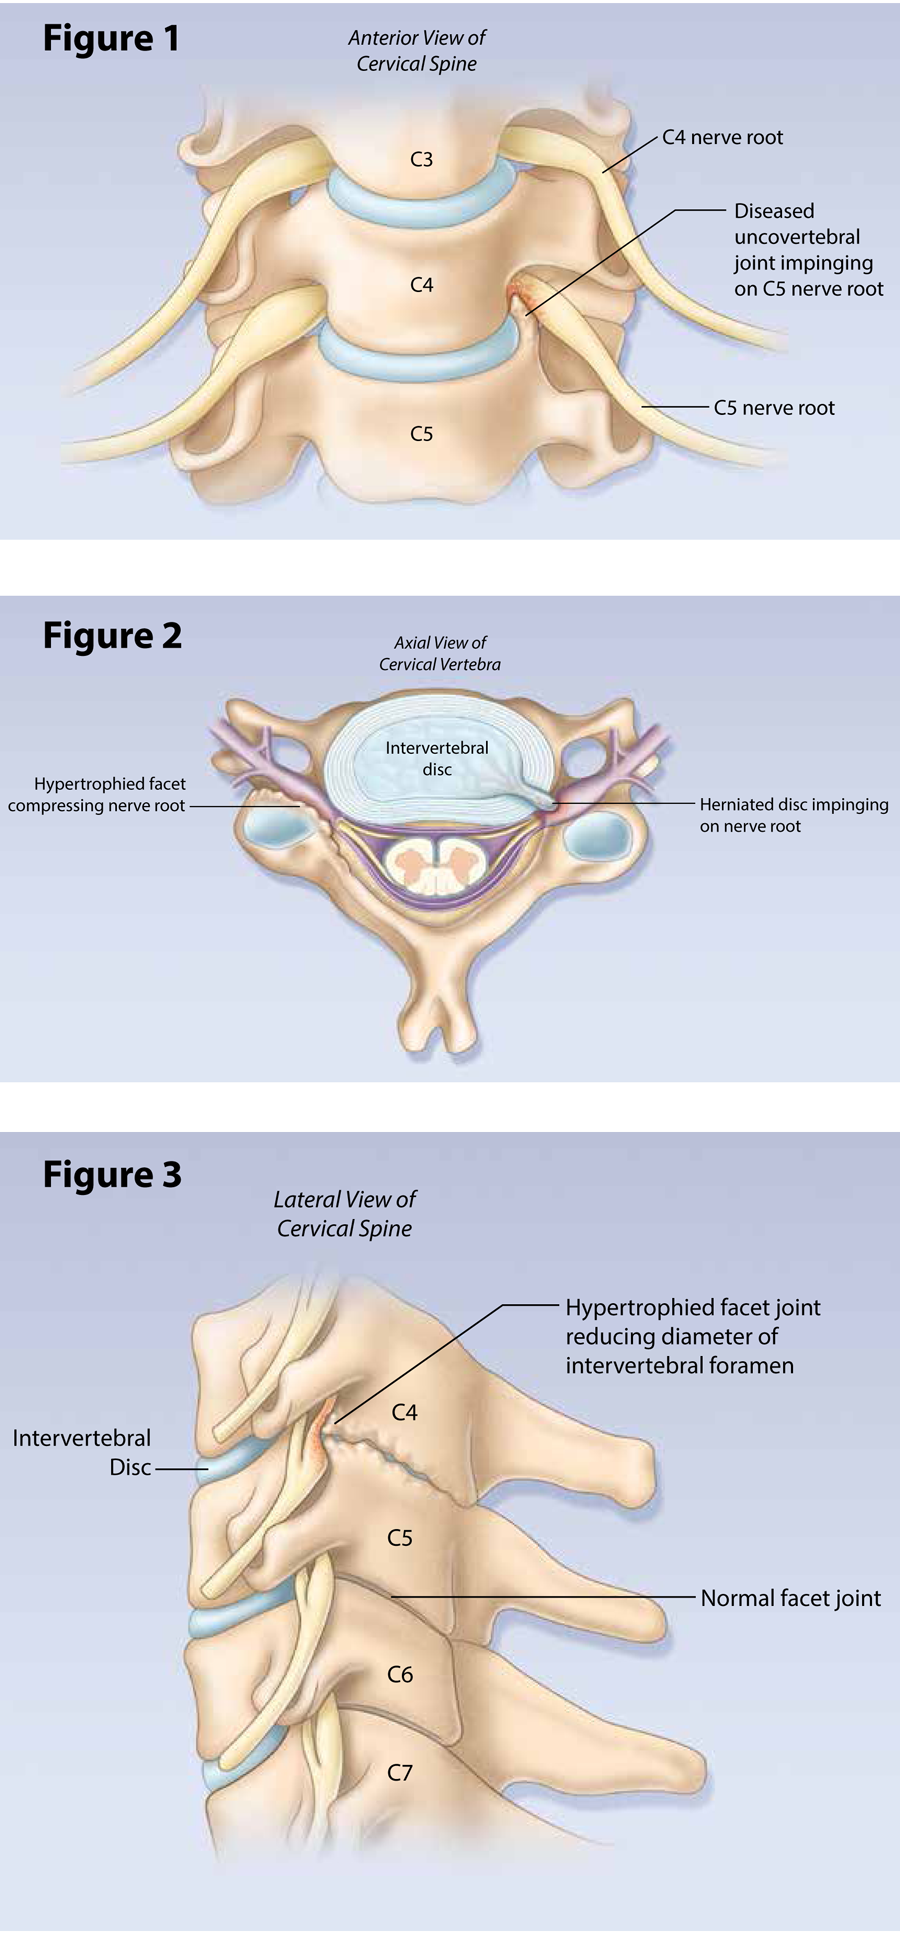 Surgery And The Root Of Middle Finger On Index Bone See Diagram 1 Cervical Pain Is A Common Clinical Problem Pure Radiculopathy Much Less Frequent